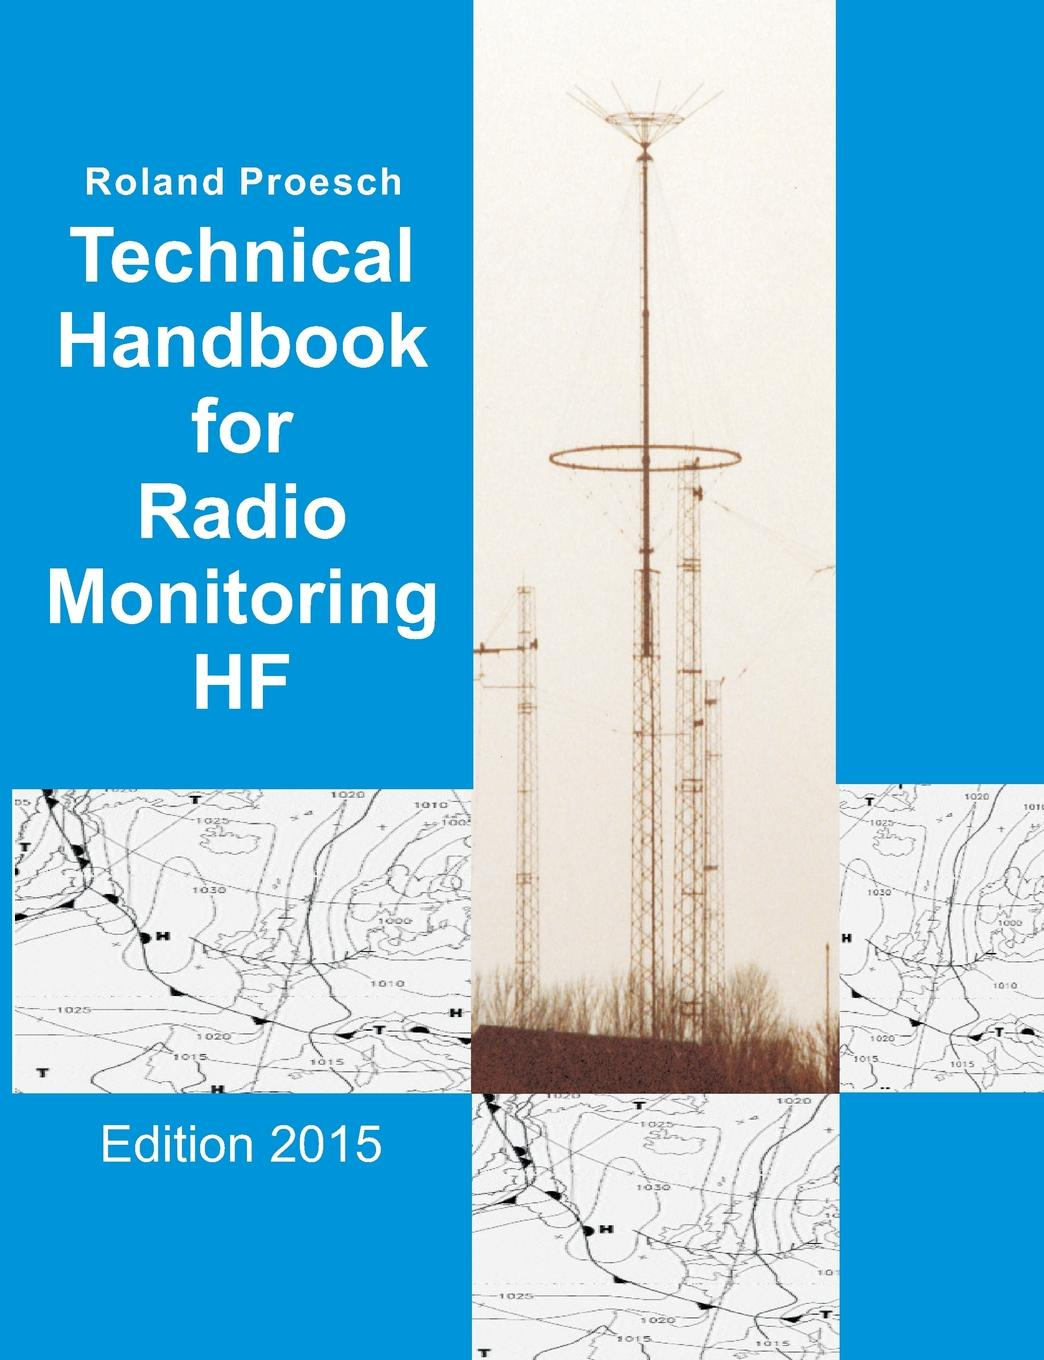 Roland Proesch Technical Handbook for Radio Monitoring HF hf 0 56 lcd digital thermostat temperature controller green 24v